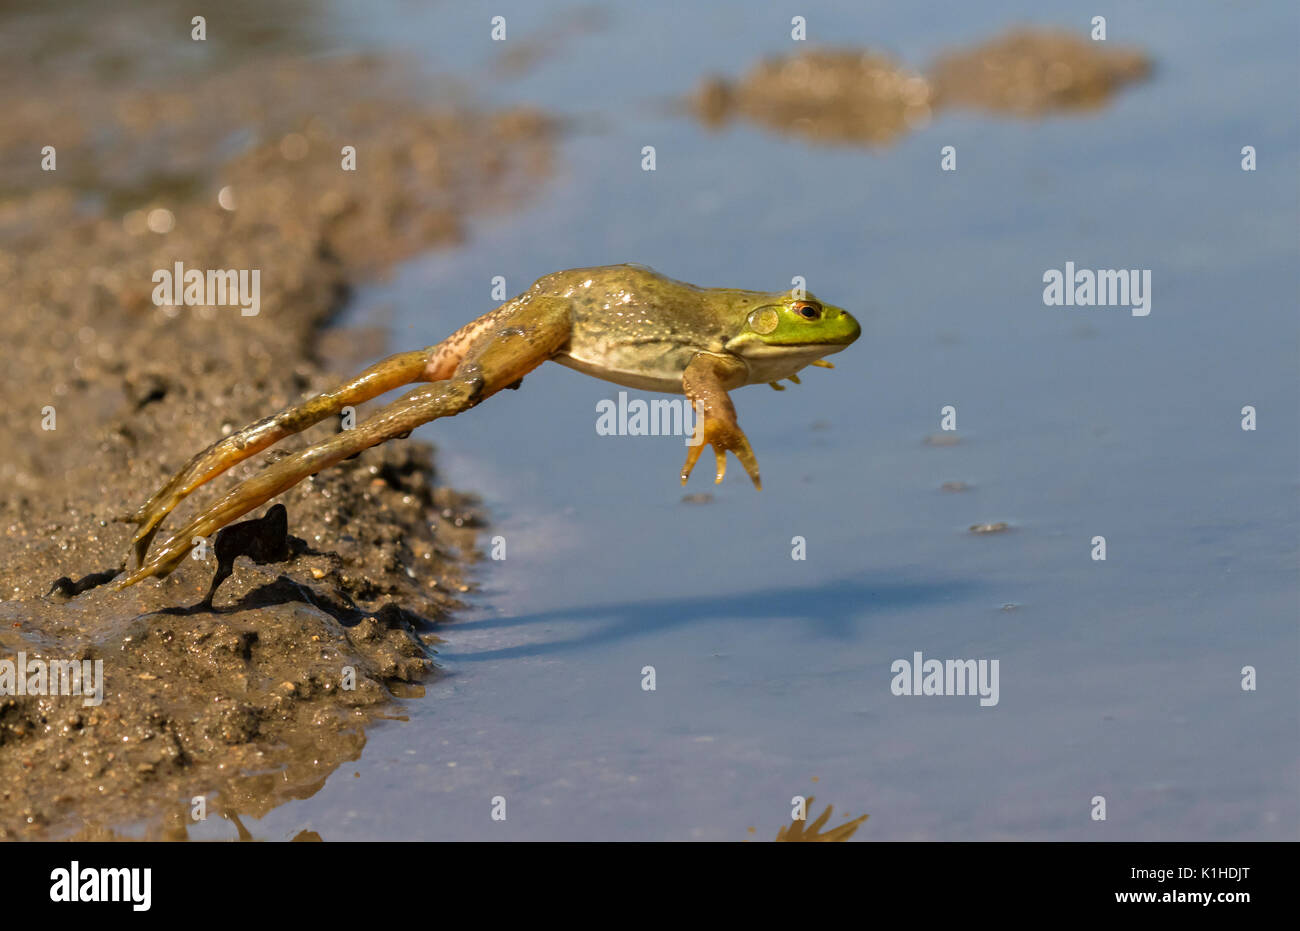 American bullfrog (Lithobates catesbeianus) jumping in a forest lake, Ames, Iowa, USA - Stock Image